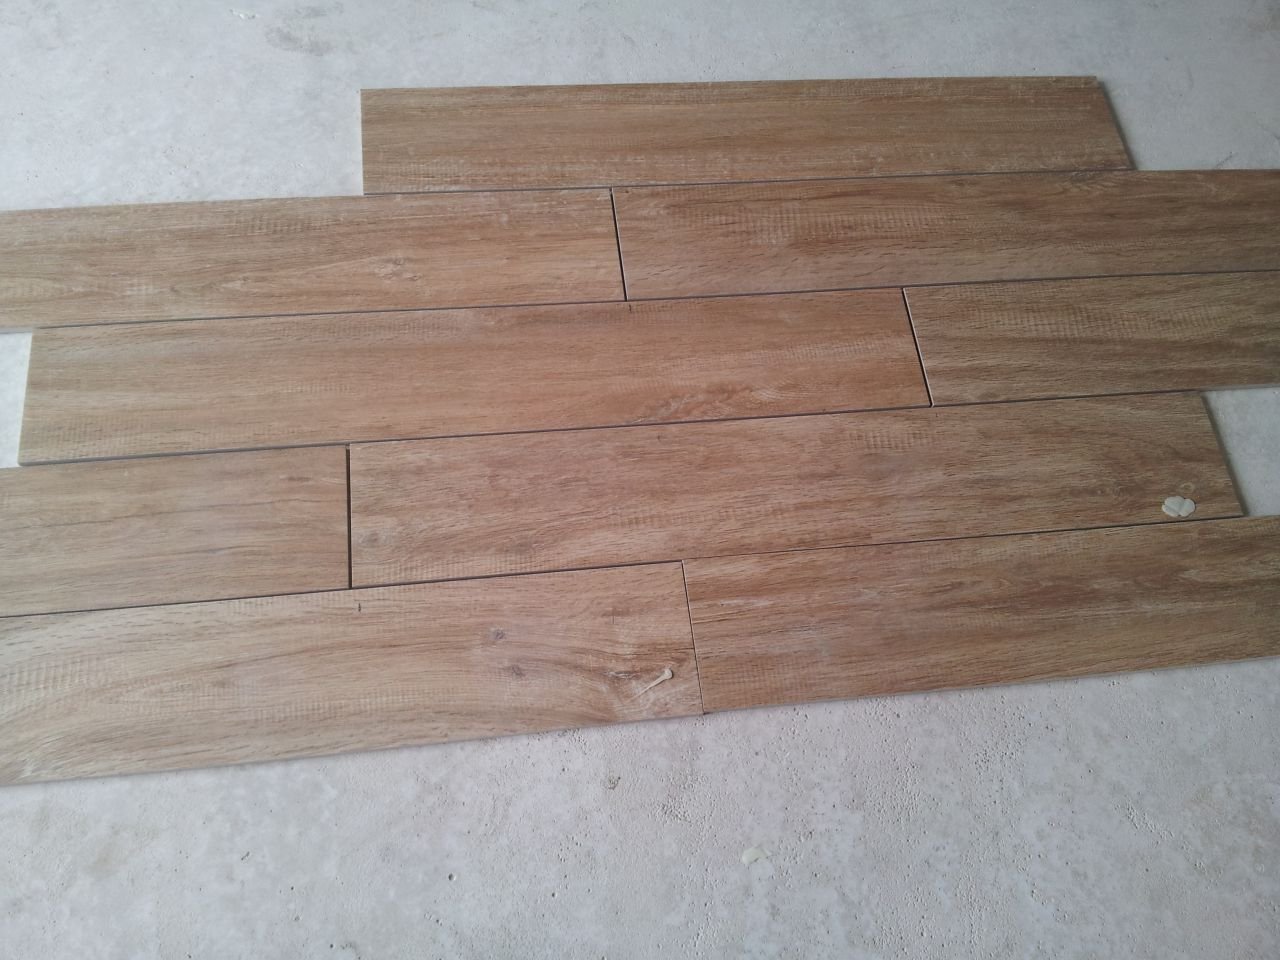 Sens et technique de pose pr carrelage imitation parquet for Pose en quinconce carrelage